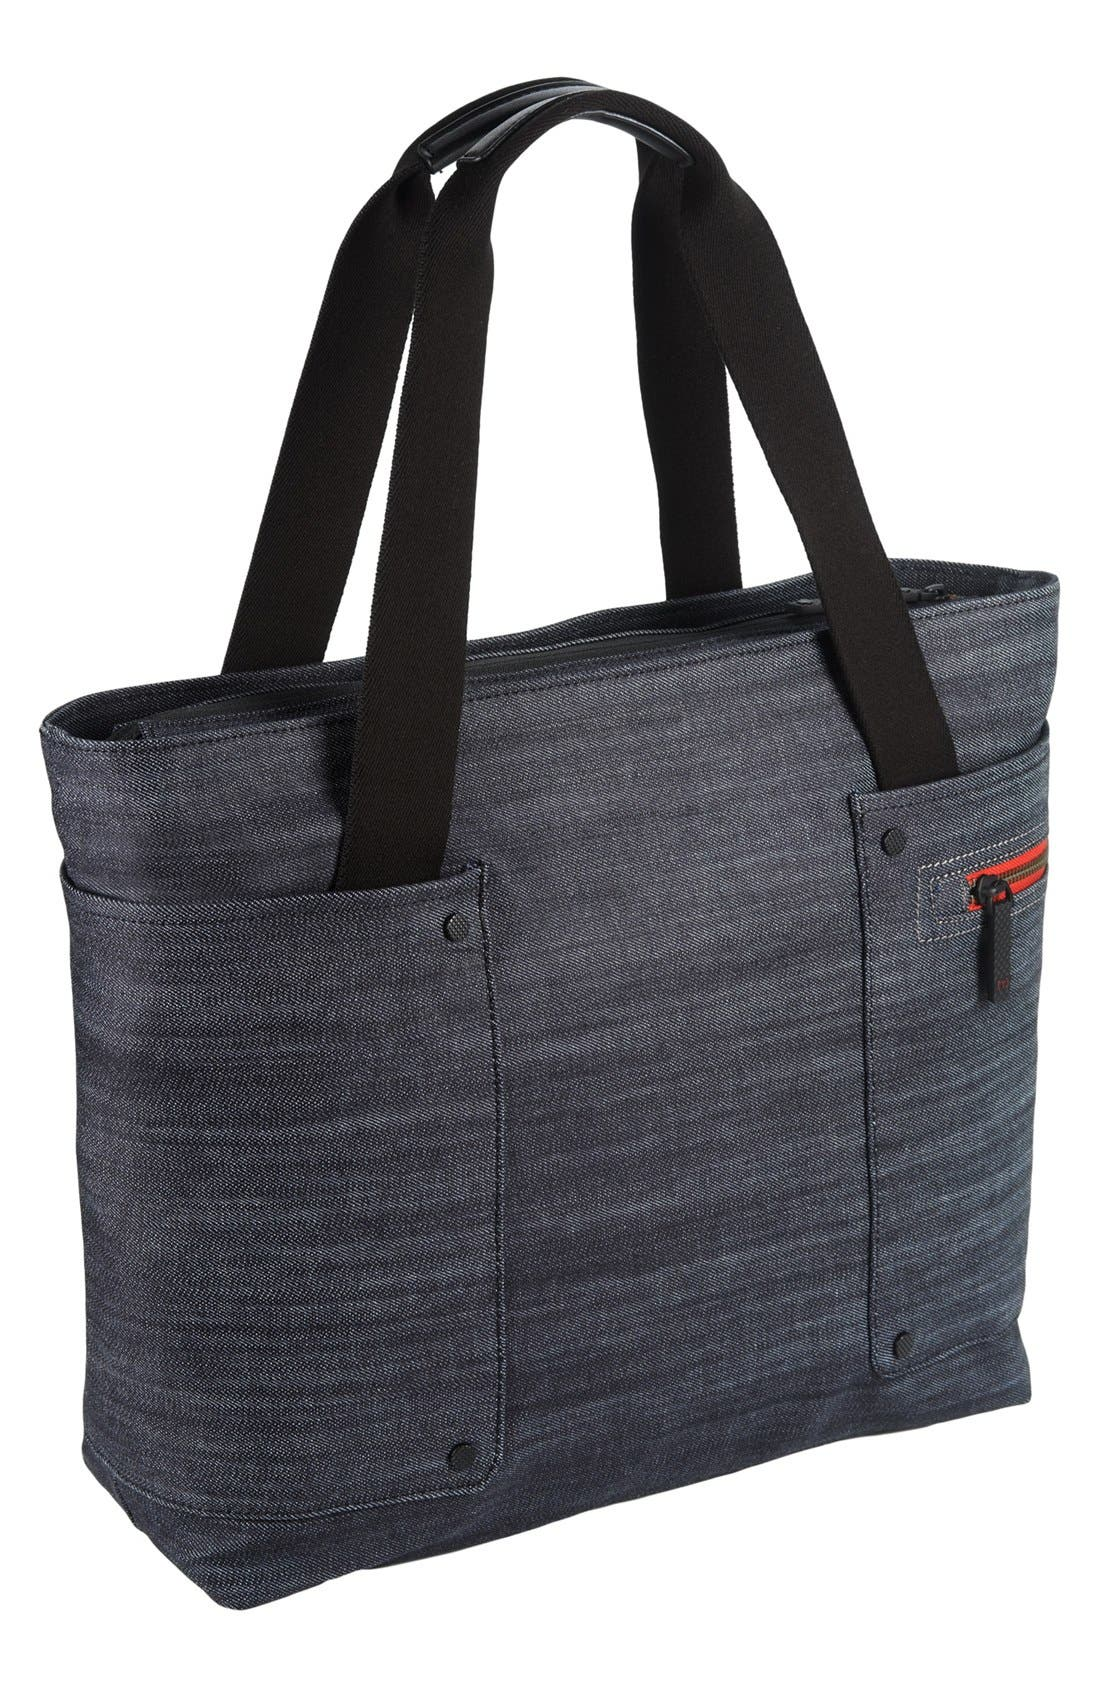 Alternate Image 2  - T-Tech by Tumi 'Icon - Haley' Tote Bag